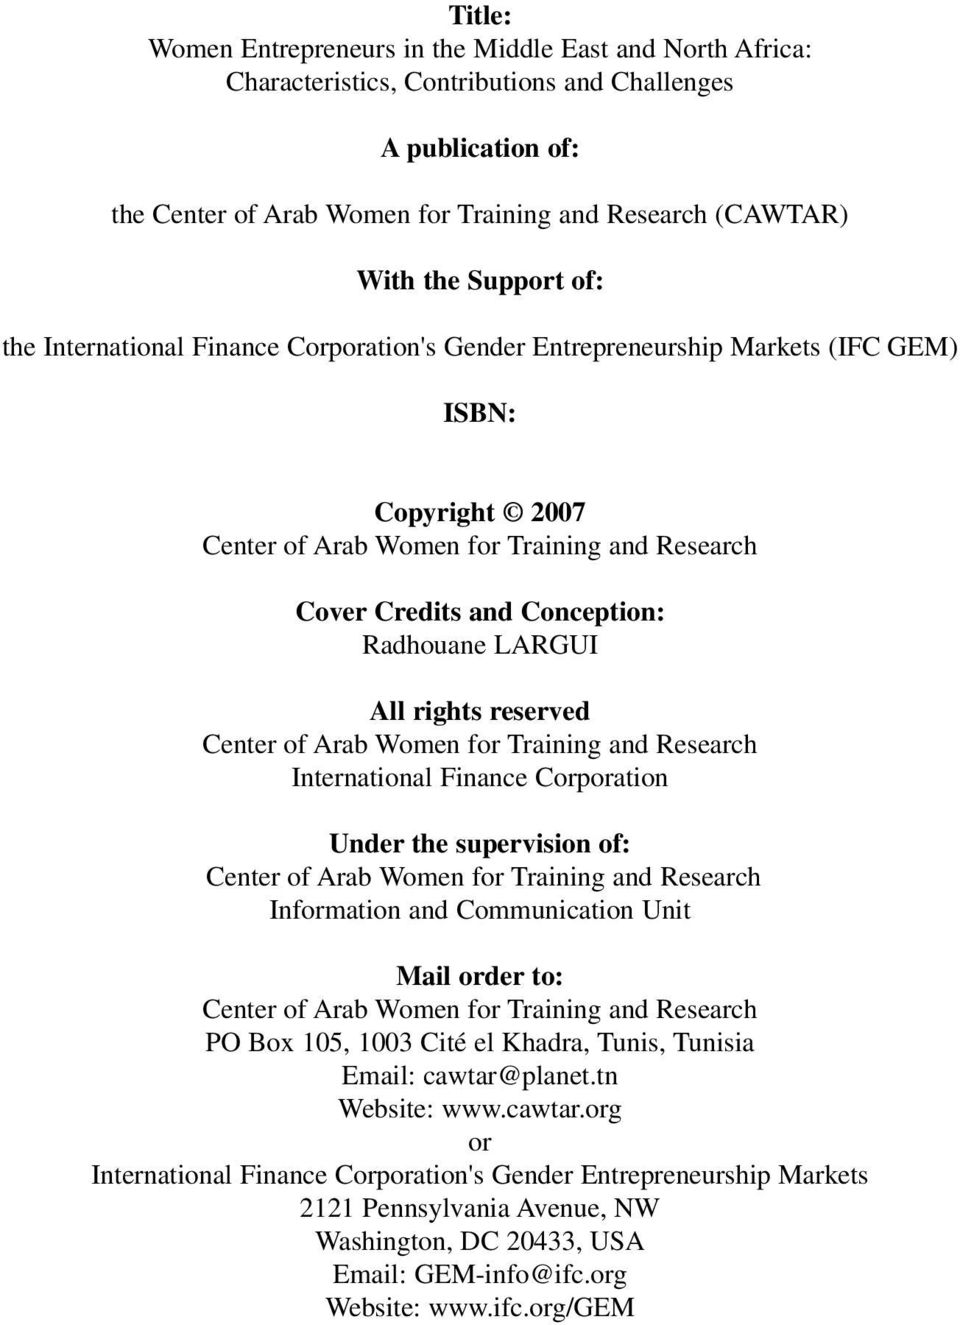 Corporation Under the supervision of: Center of Arab Women for Training and Research Information and Communication Unit Mail order to: Center of Arab Women for Training and Research PO Box 5, 03 Cité